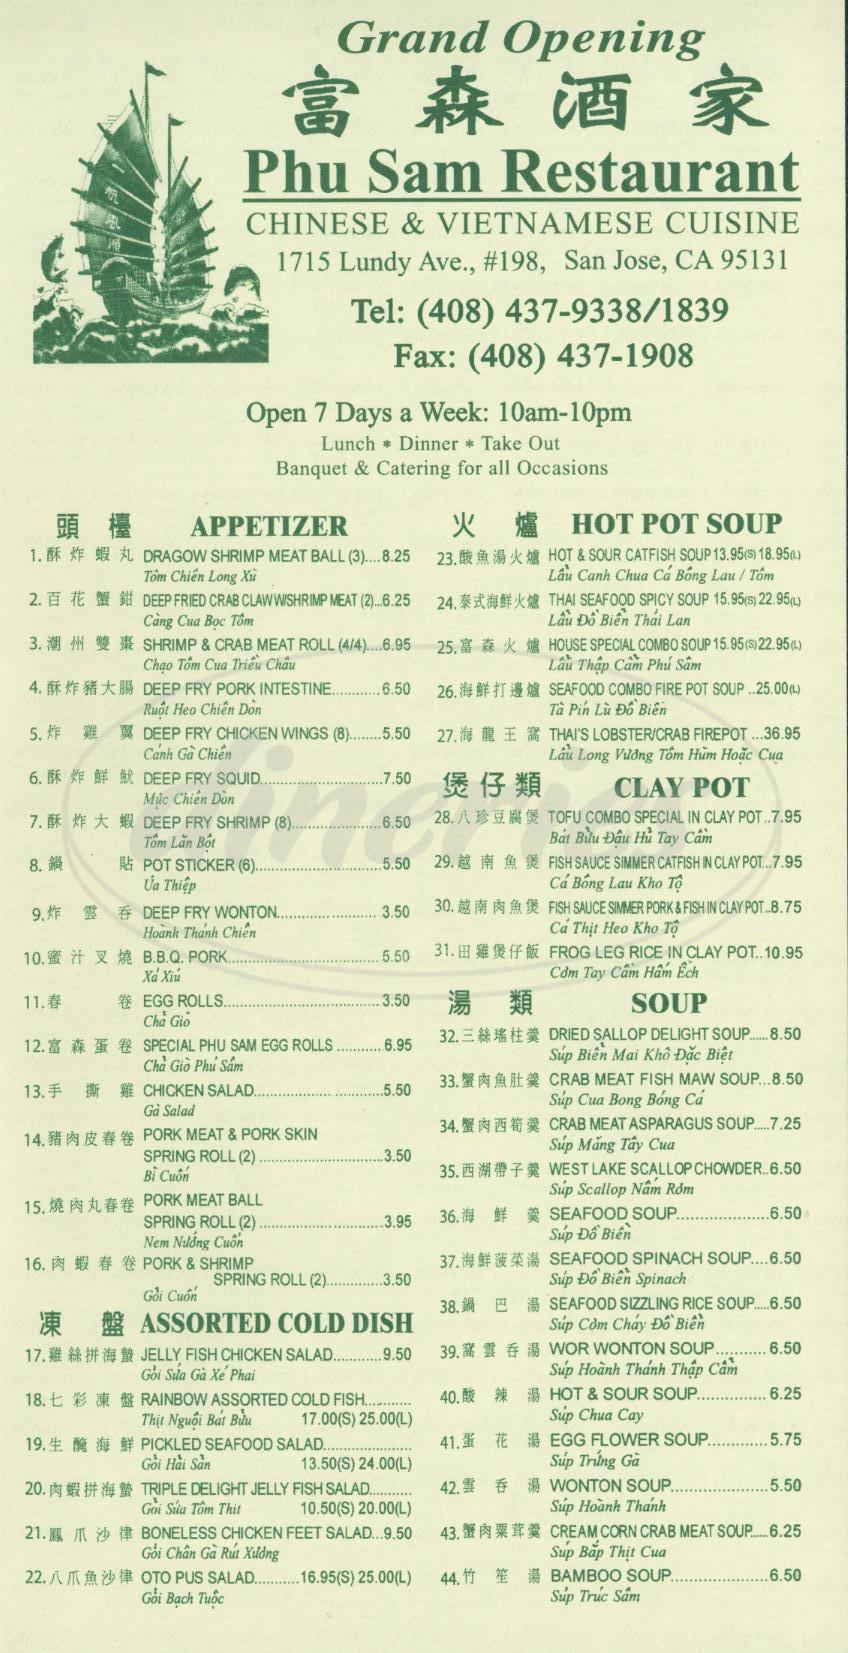 menu for Phu Sam Restaurant